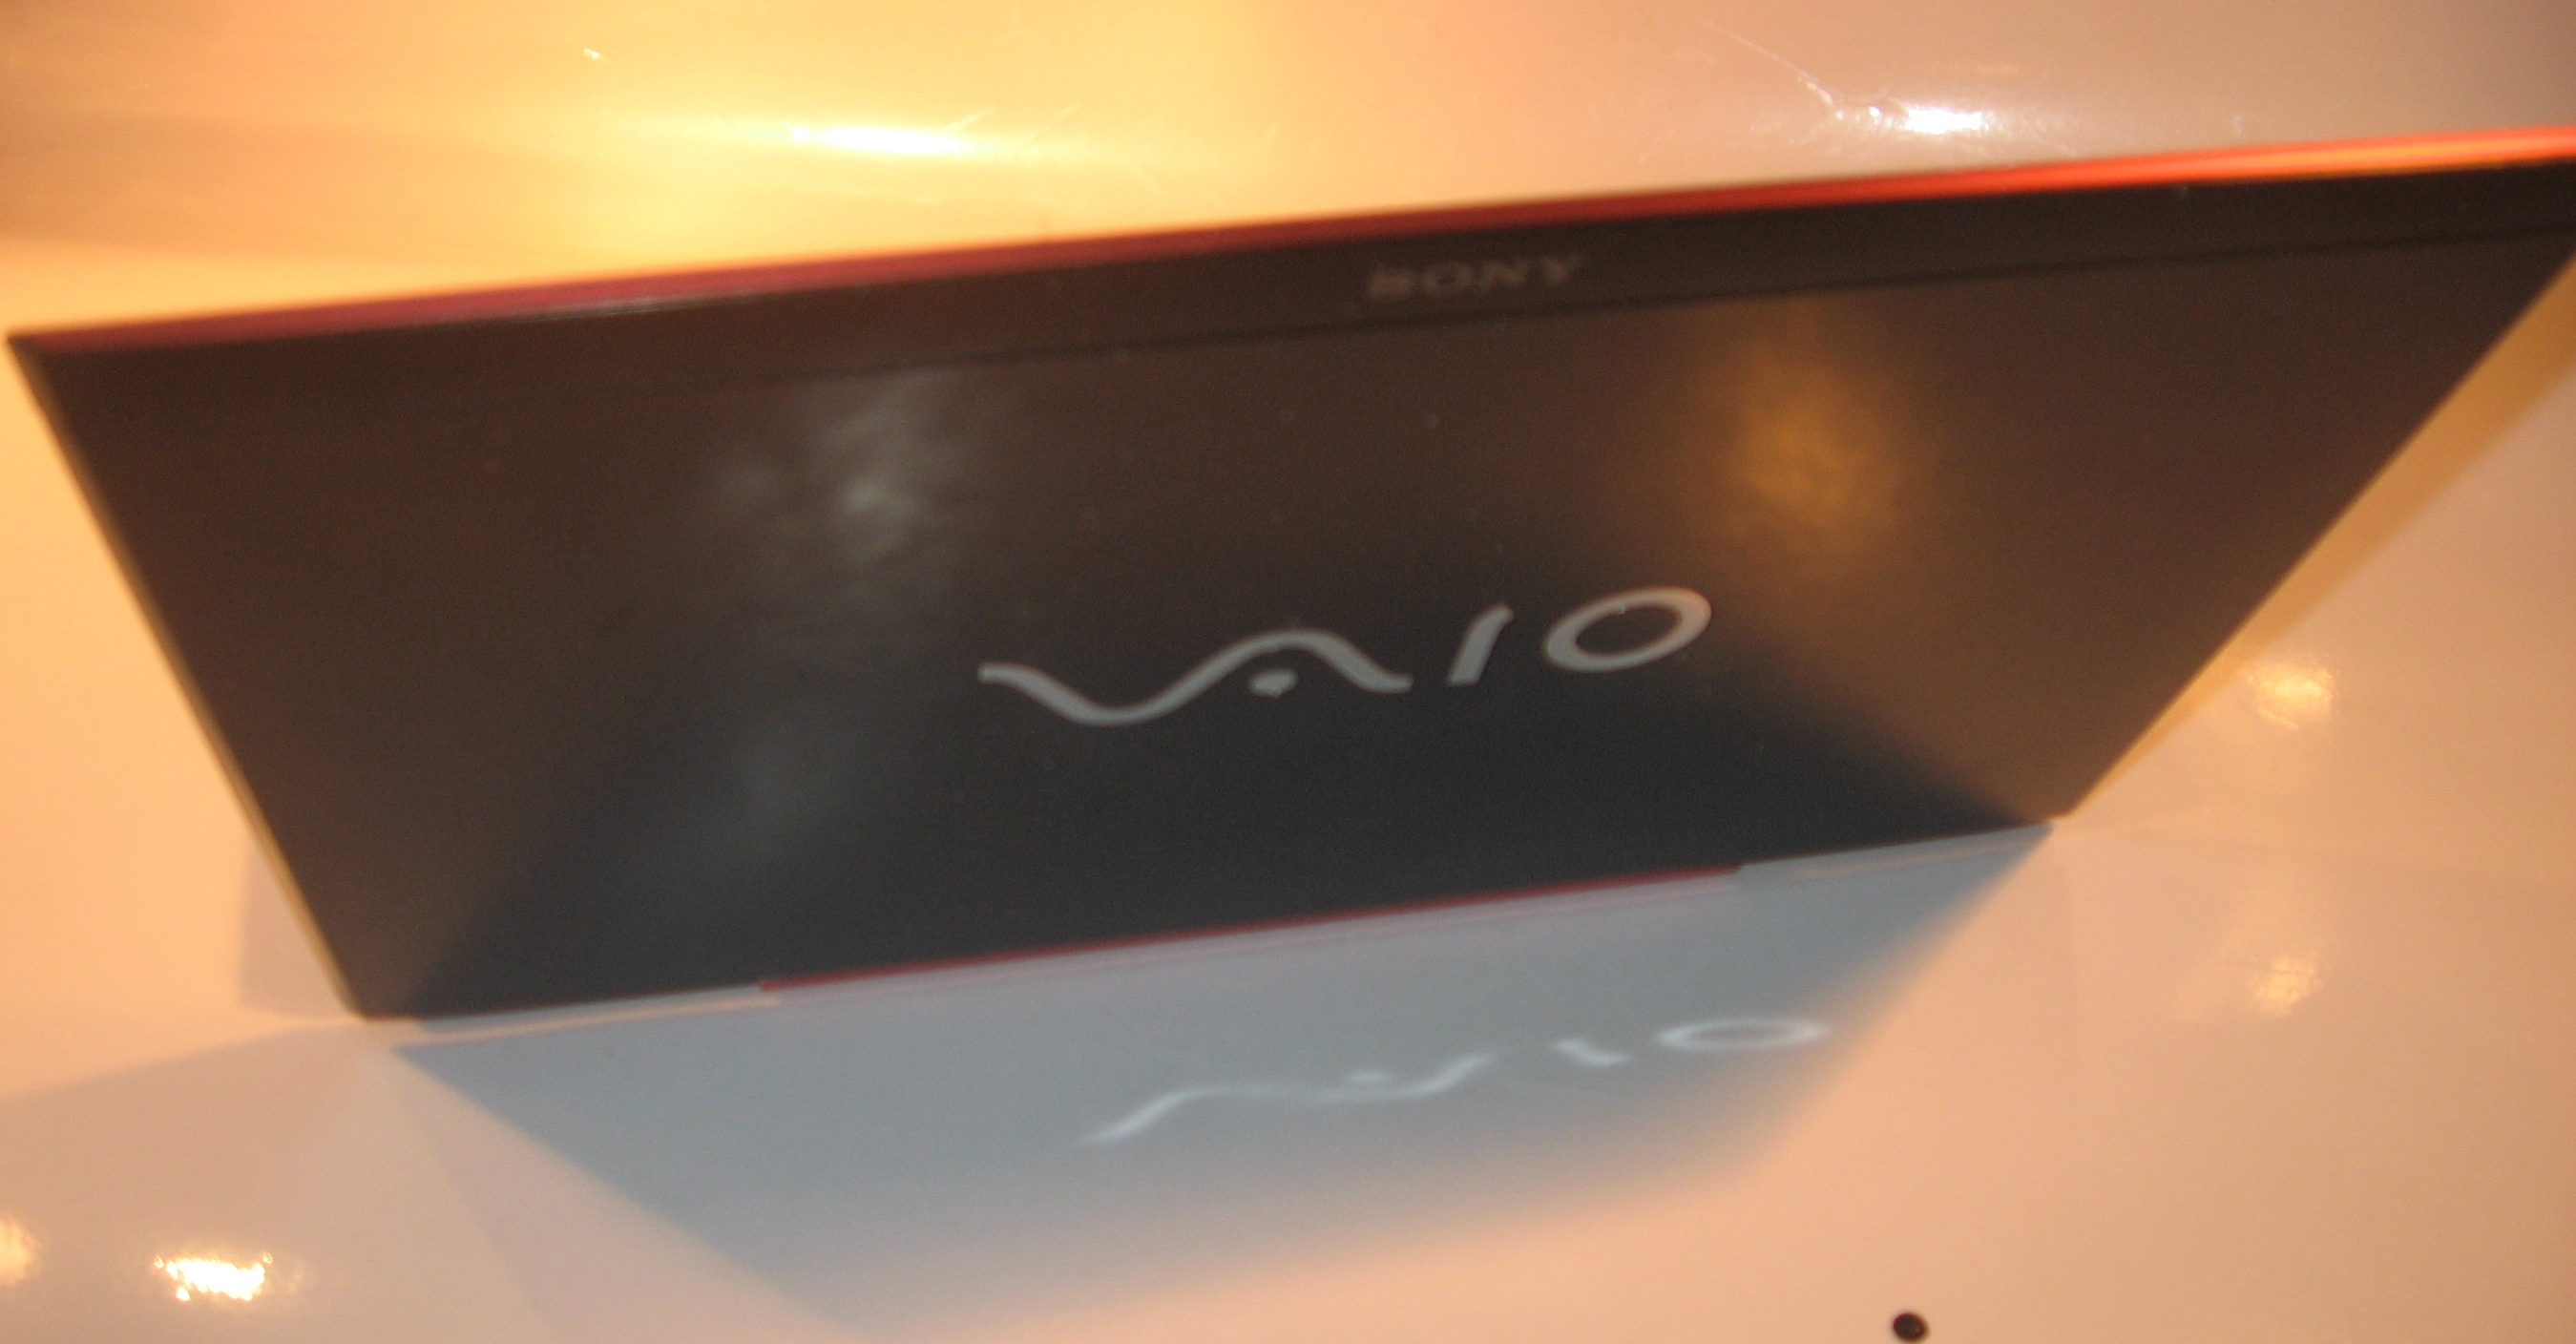 Sony VAIO S Series lid view